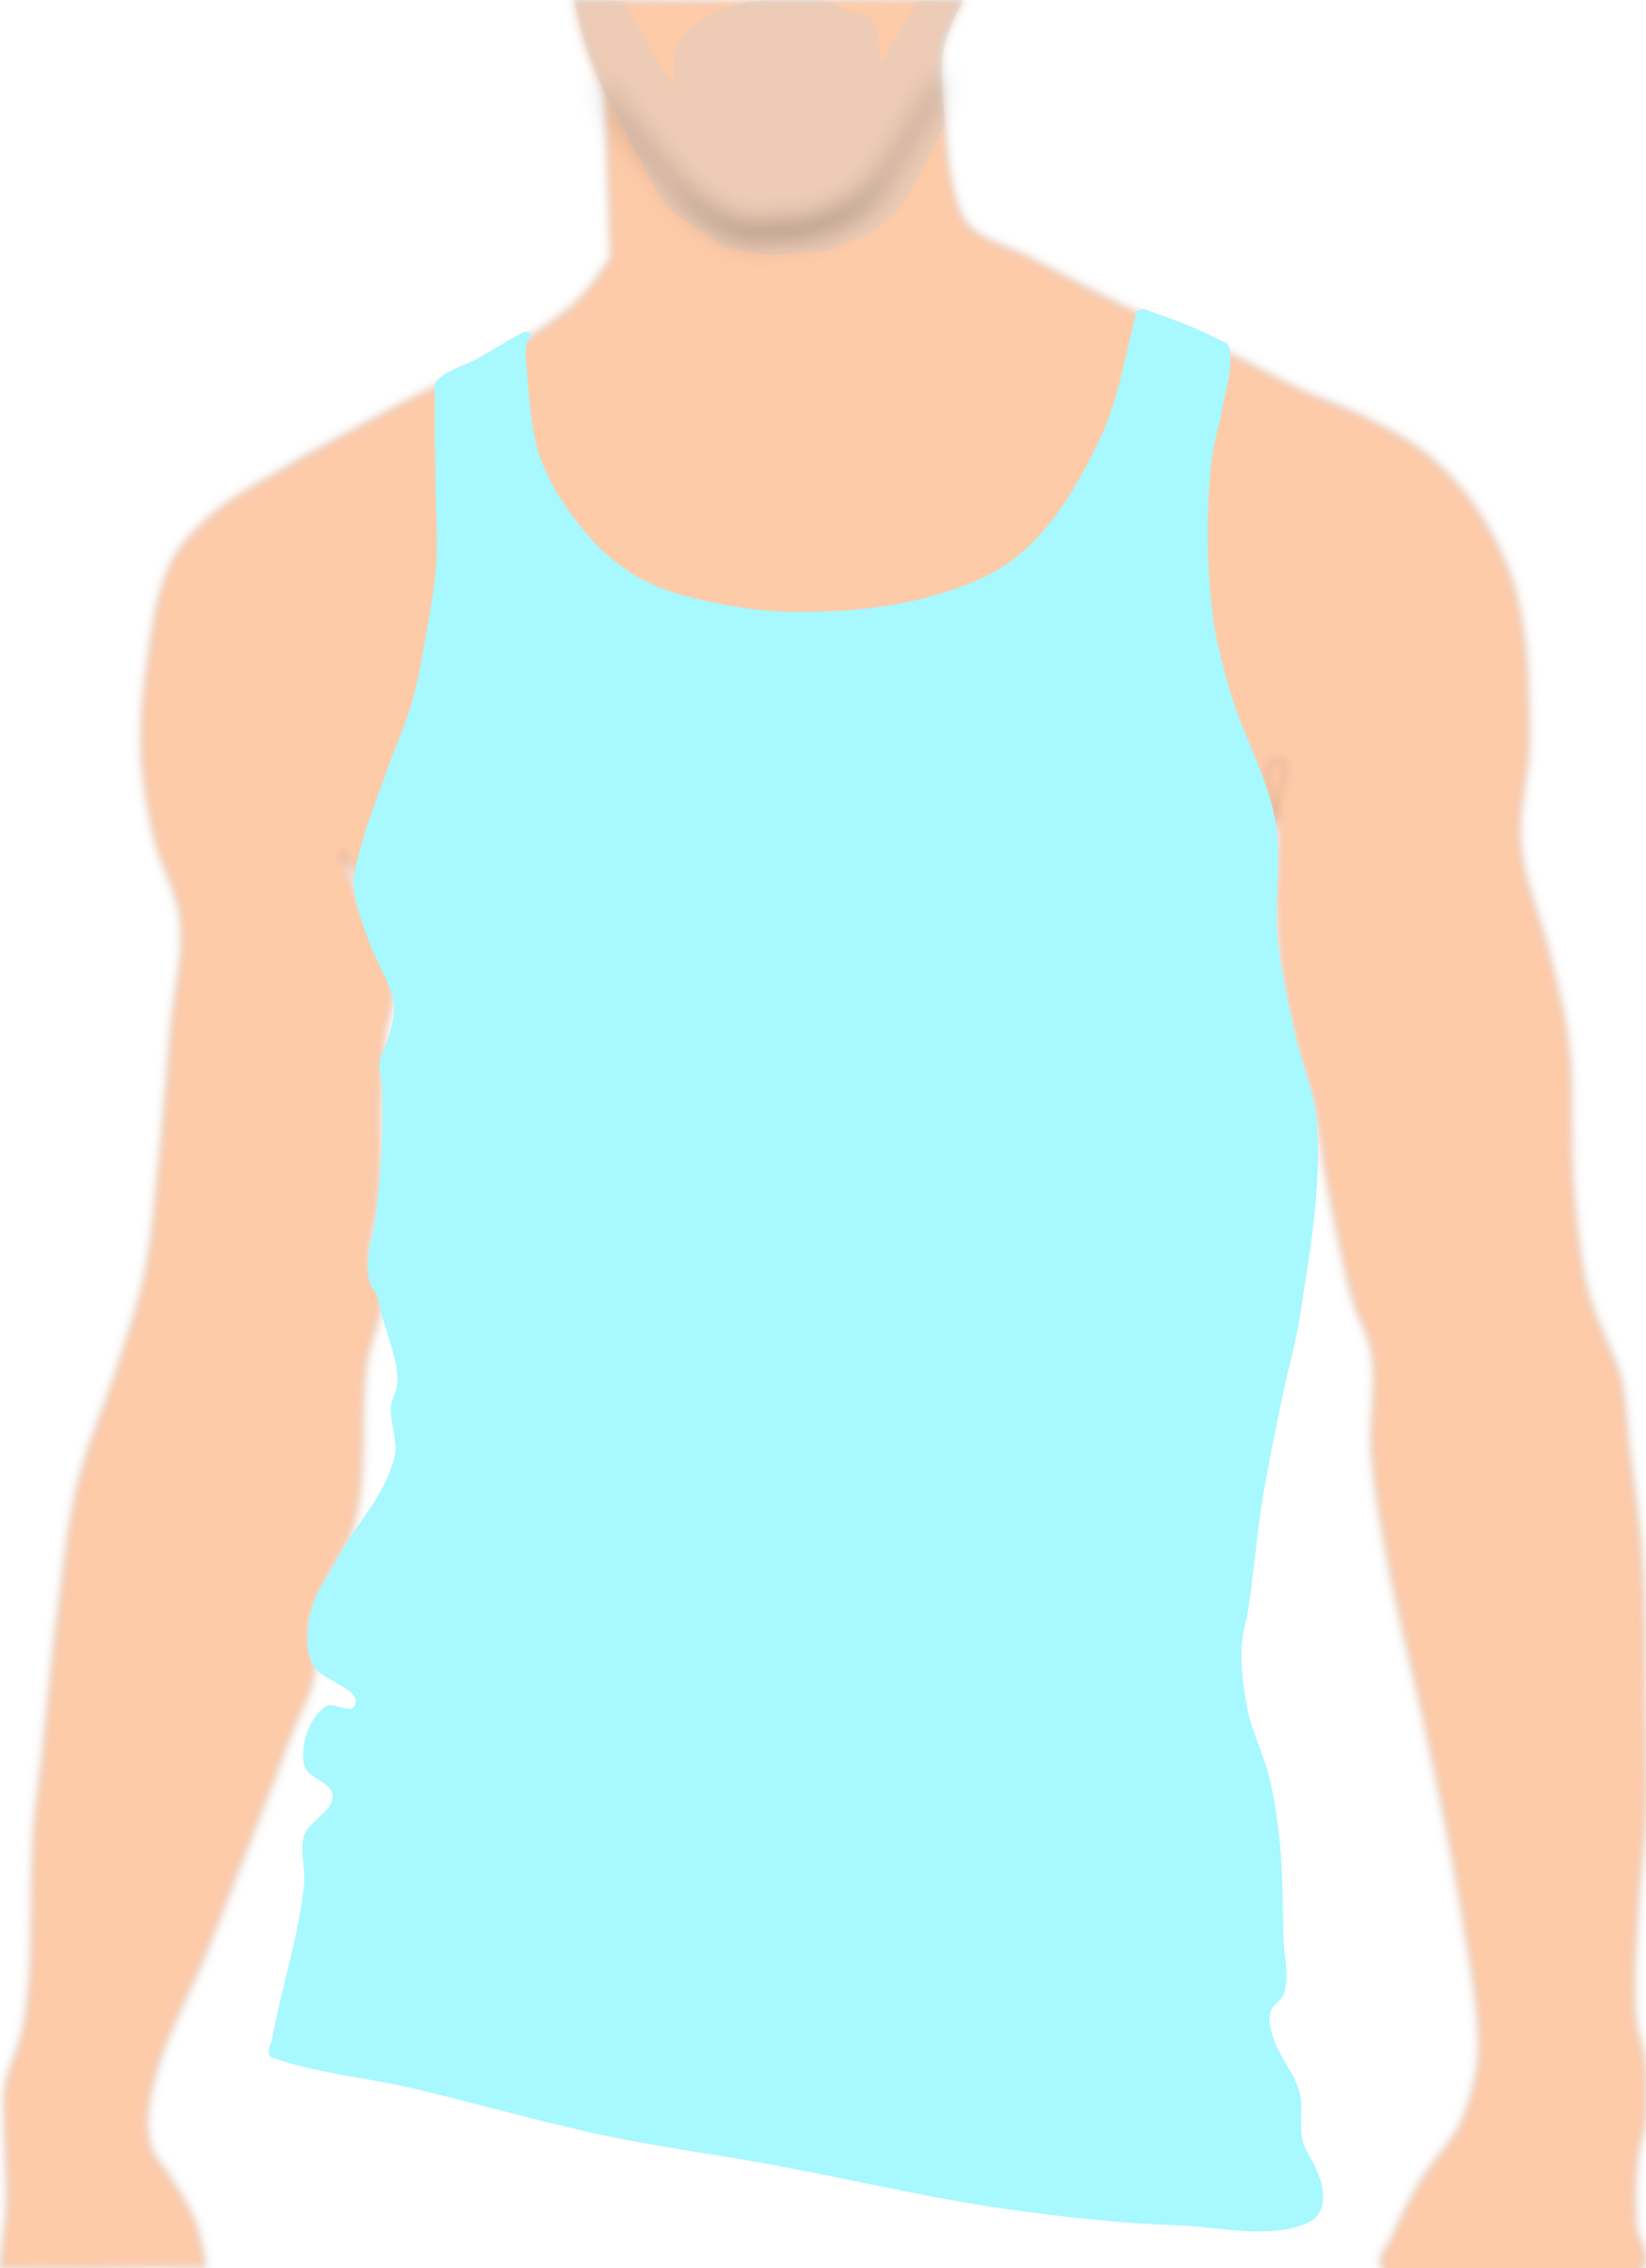 Clipart Exercise Pictures